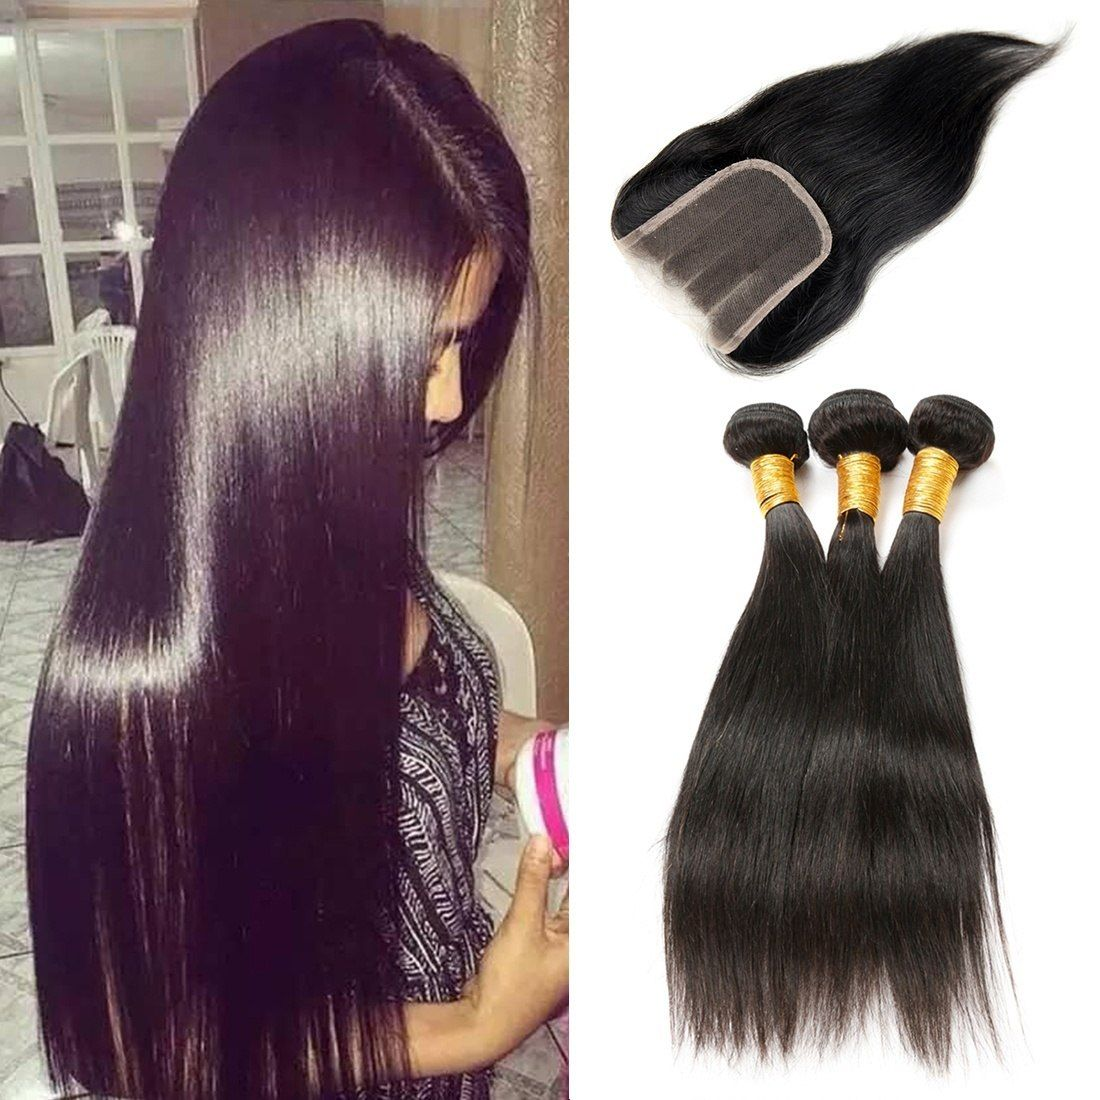 Brazilian Straight Hair Weave 3 Bundles 8 16 Inch With 4 4 Three Part Lace Cl Human Hair Extensions Brazilian Straight Human Hair Brazilian Straight Hair Weave